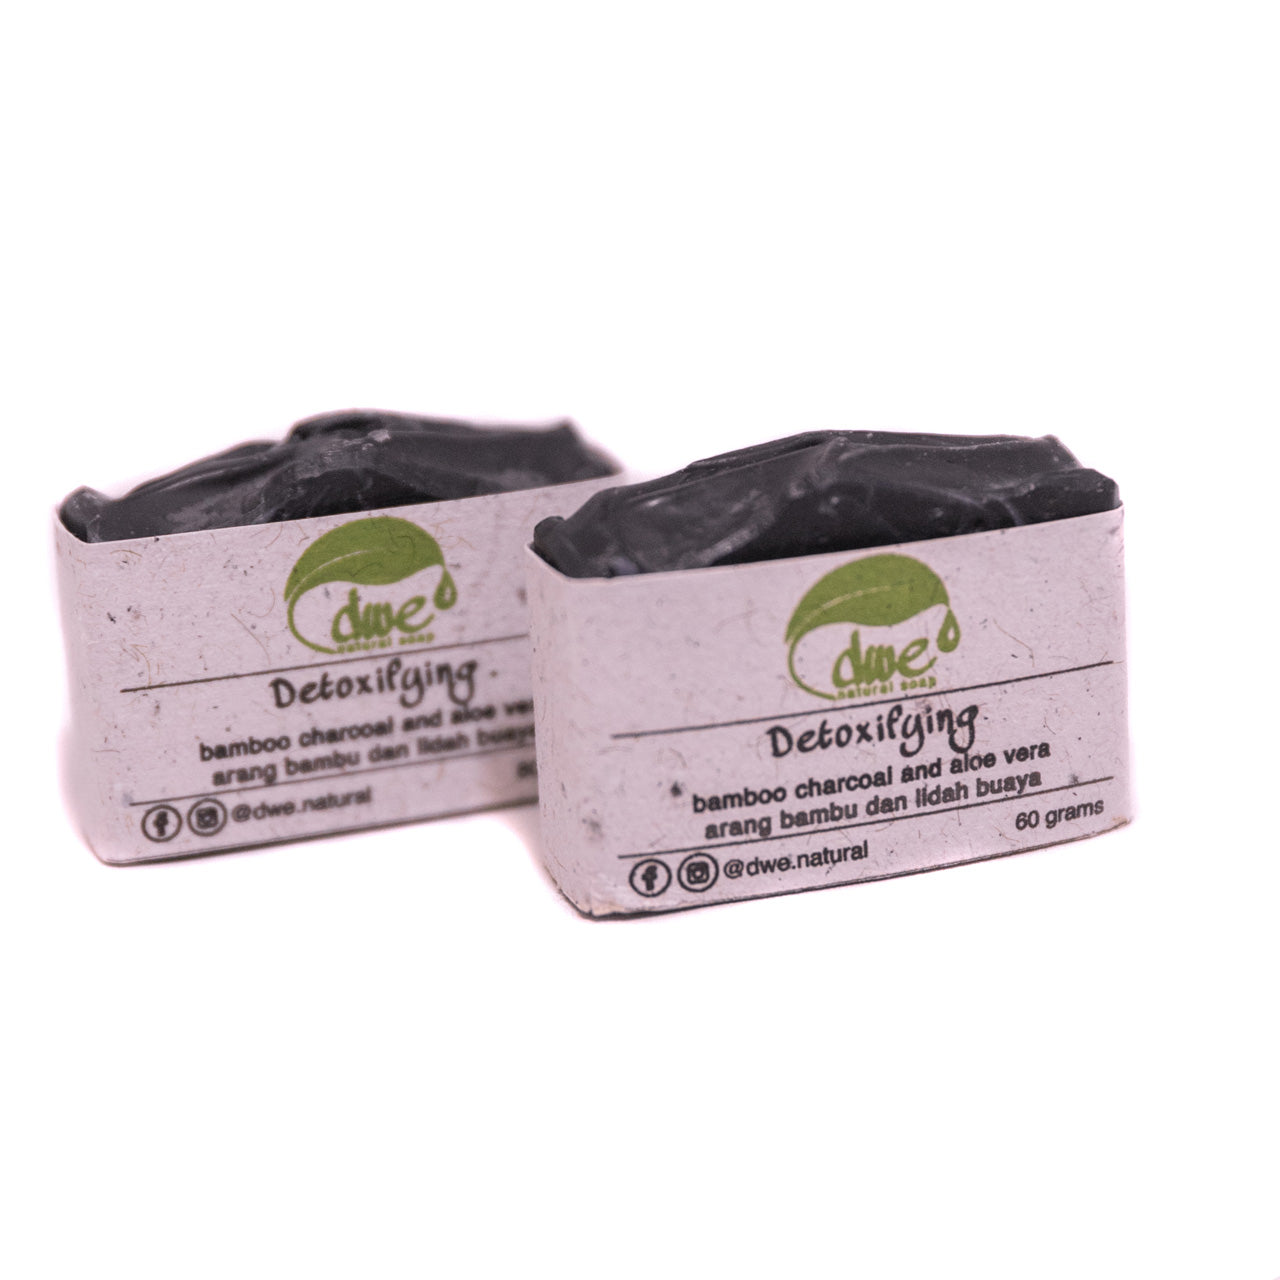 Detoxifying - Charcoal & Aloe Vera Soap Bar 60g/Each